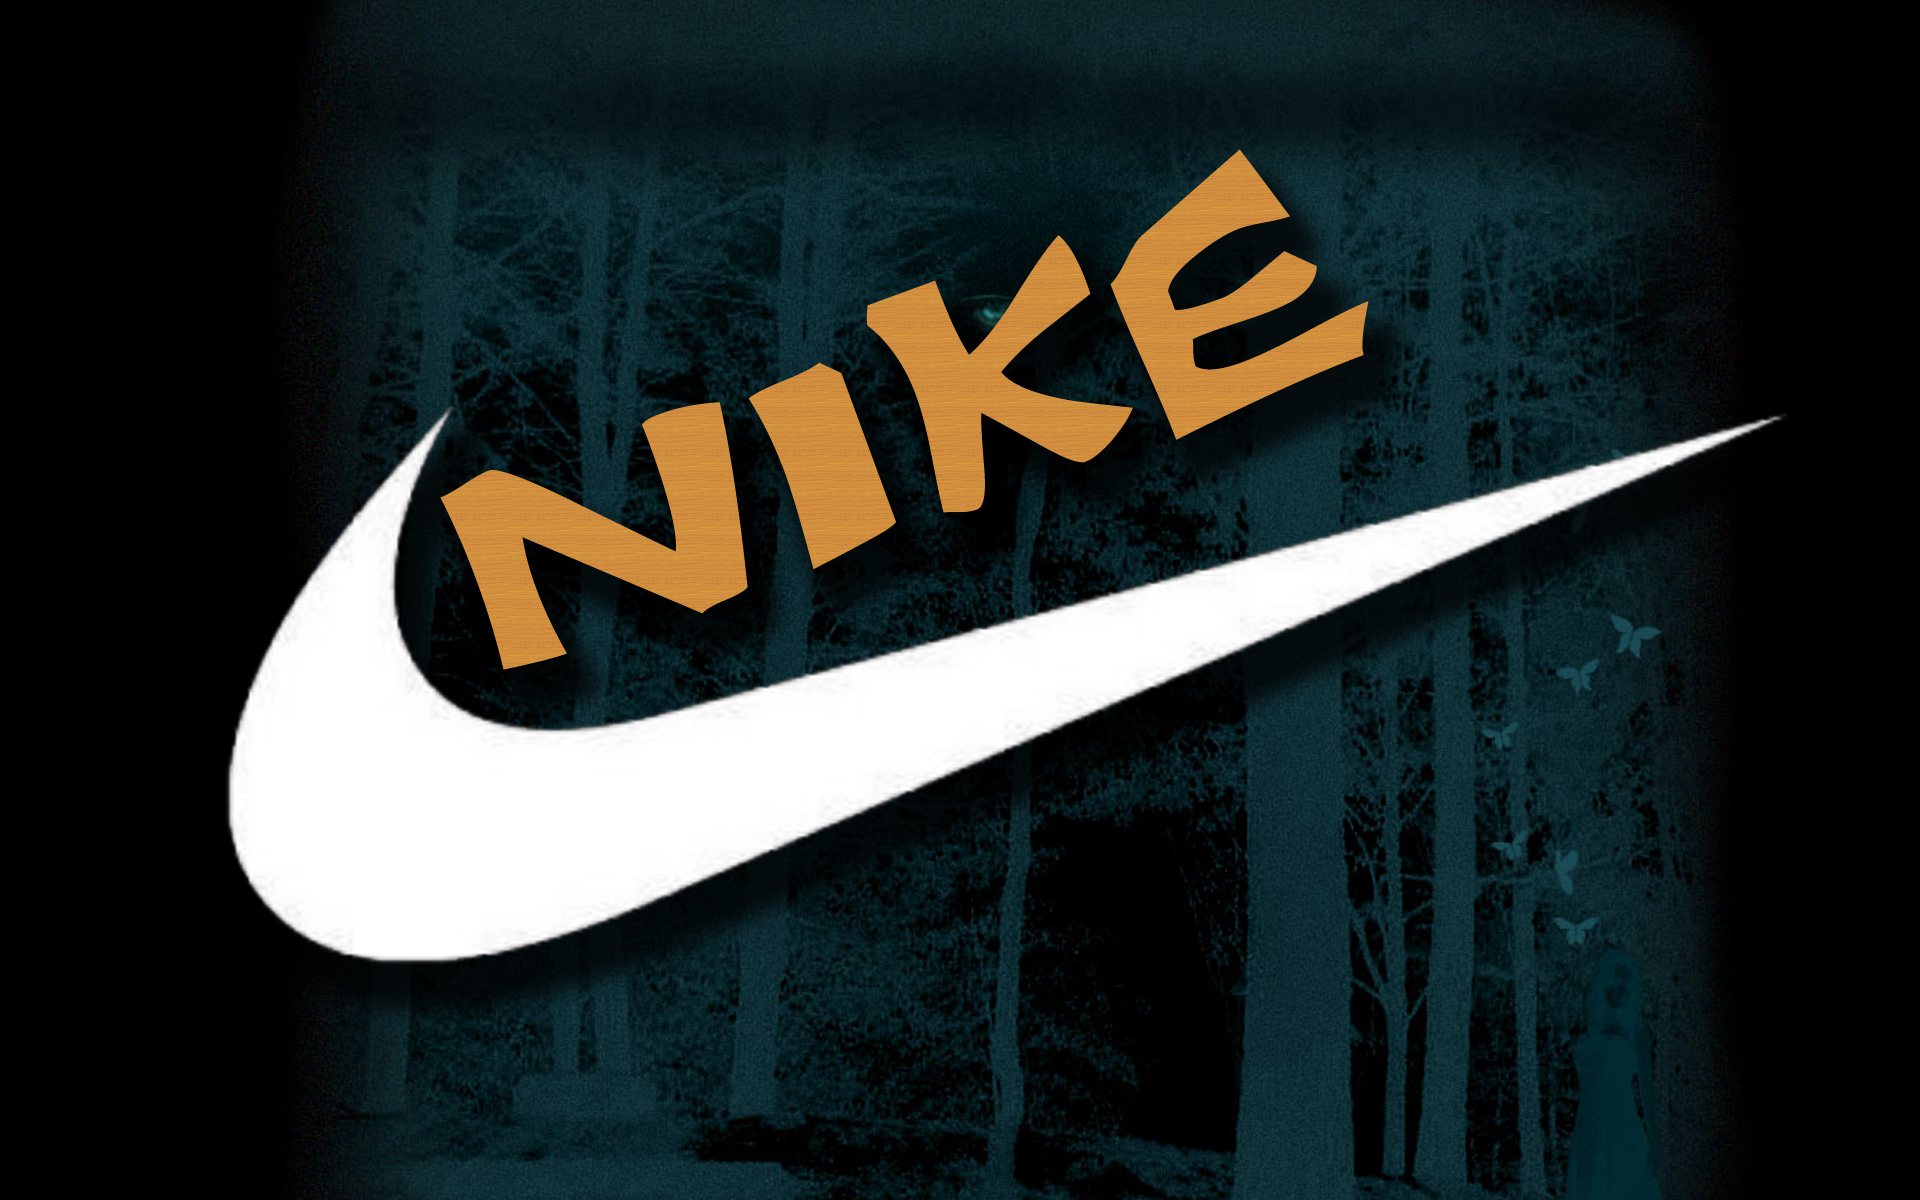 Free Download Nike Logo Cool Hd Wallpaper Download Wallpapers Page 1920x1200 For Your Desktop Mobile Tablet Explore 75 Cool Nike Backgrounds Cool Nike Wallpaper Nike Money Wallpaper Cool Nike Logo Wallpapers